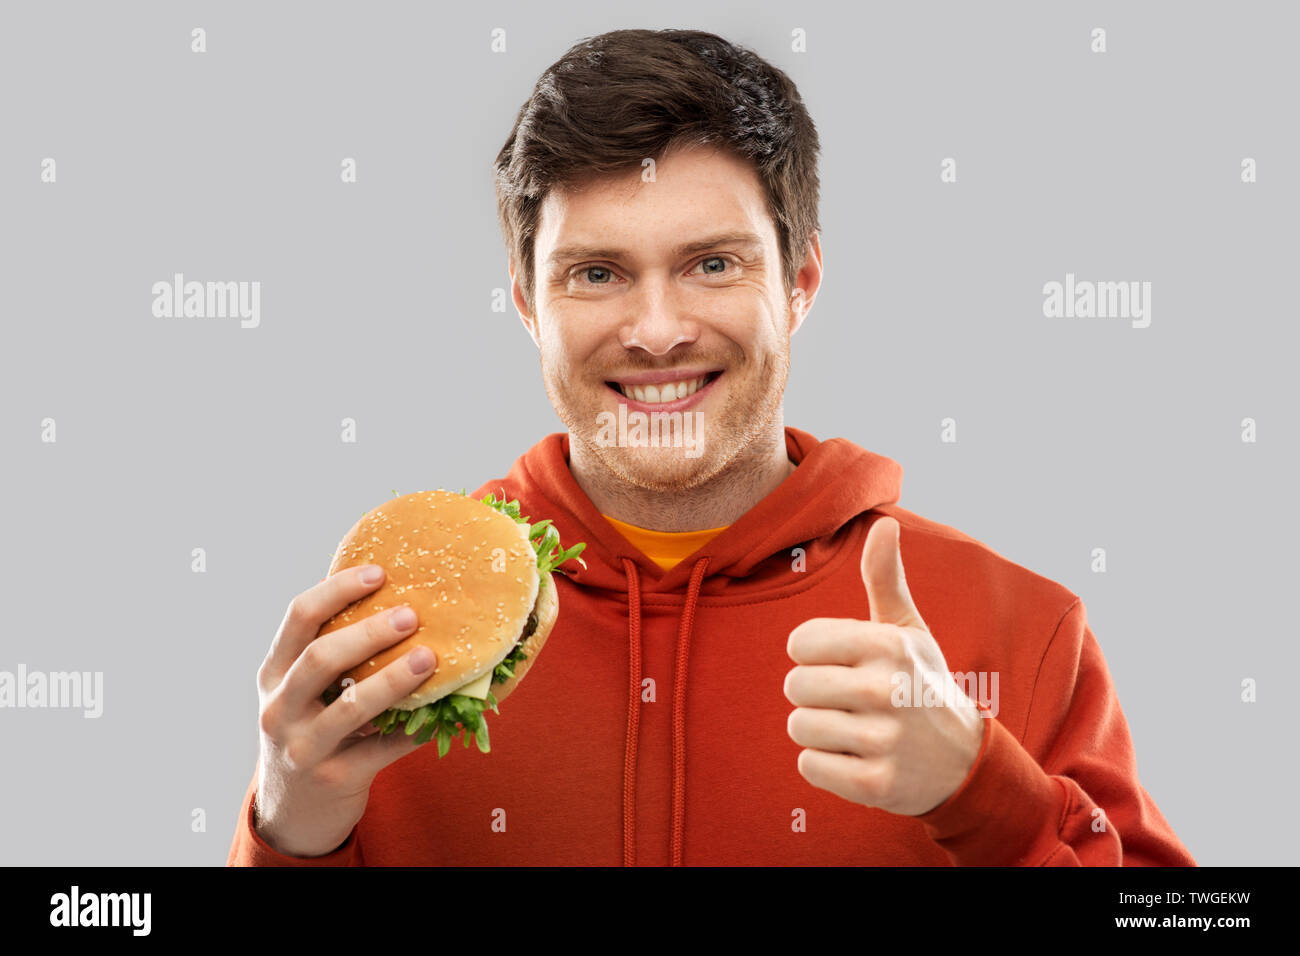 happy young man with hamburger showing thumbs up - Stock Image